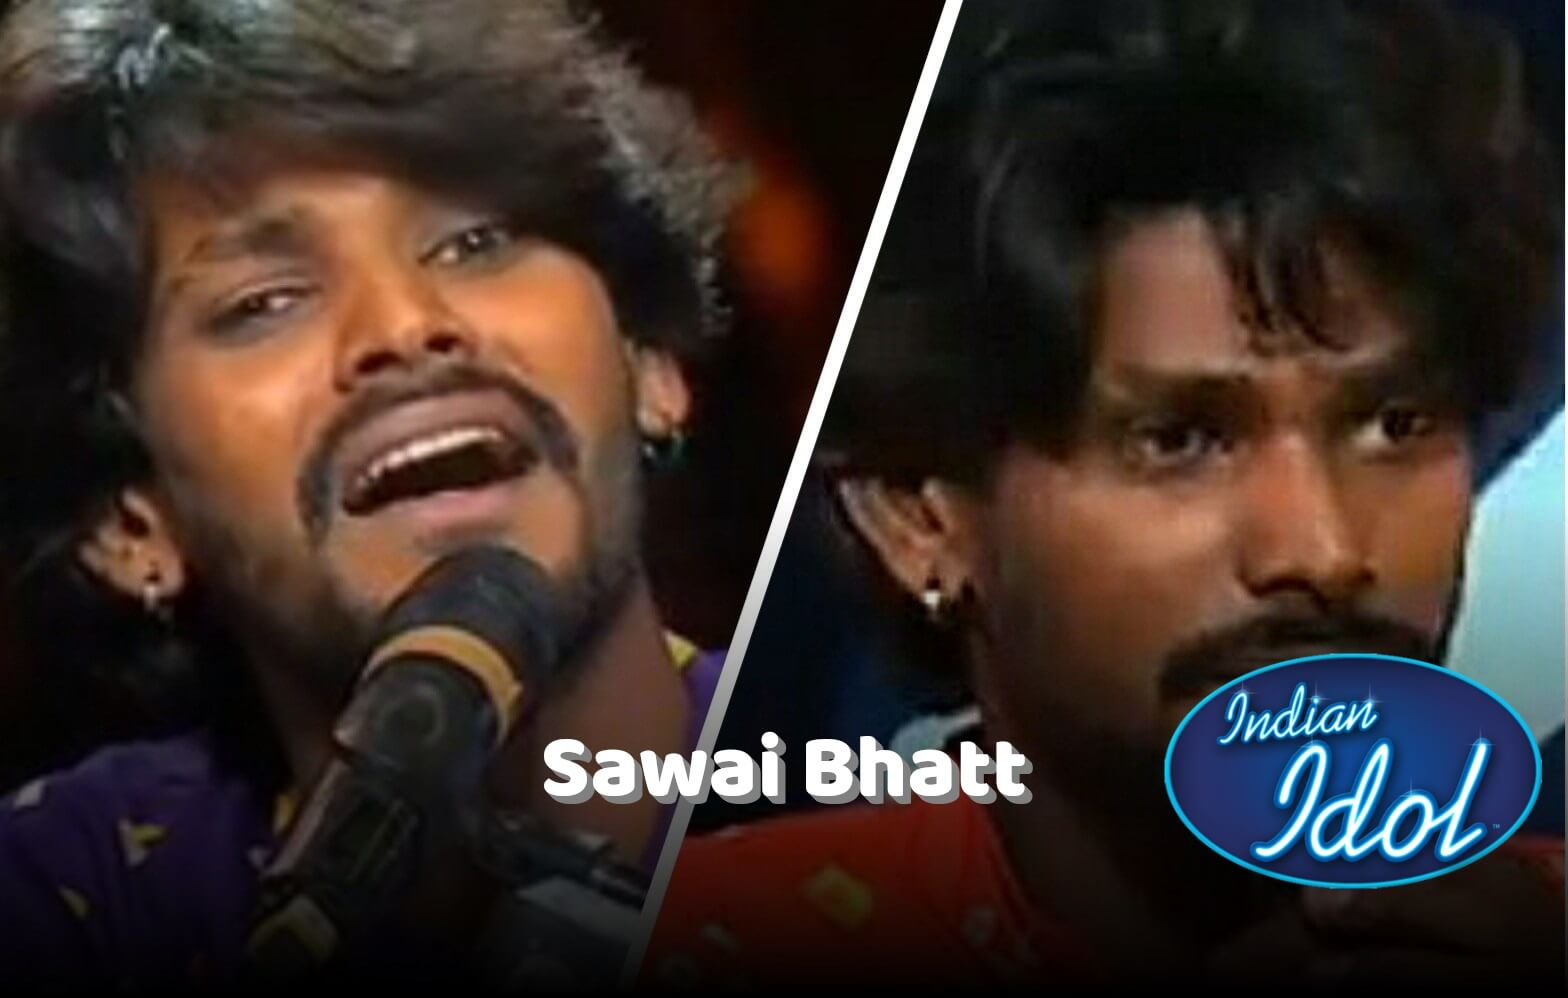 Sawai-Bhatt-Indian-Idol-2020-Contestant-Bio-Age-Wiki